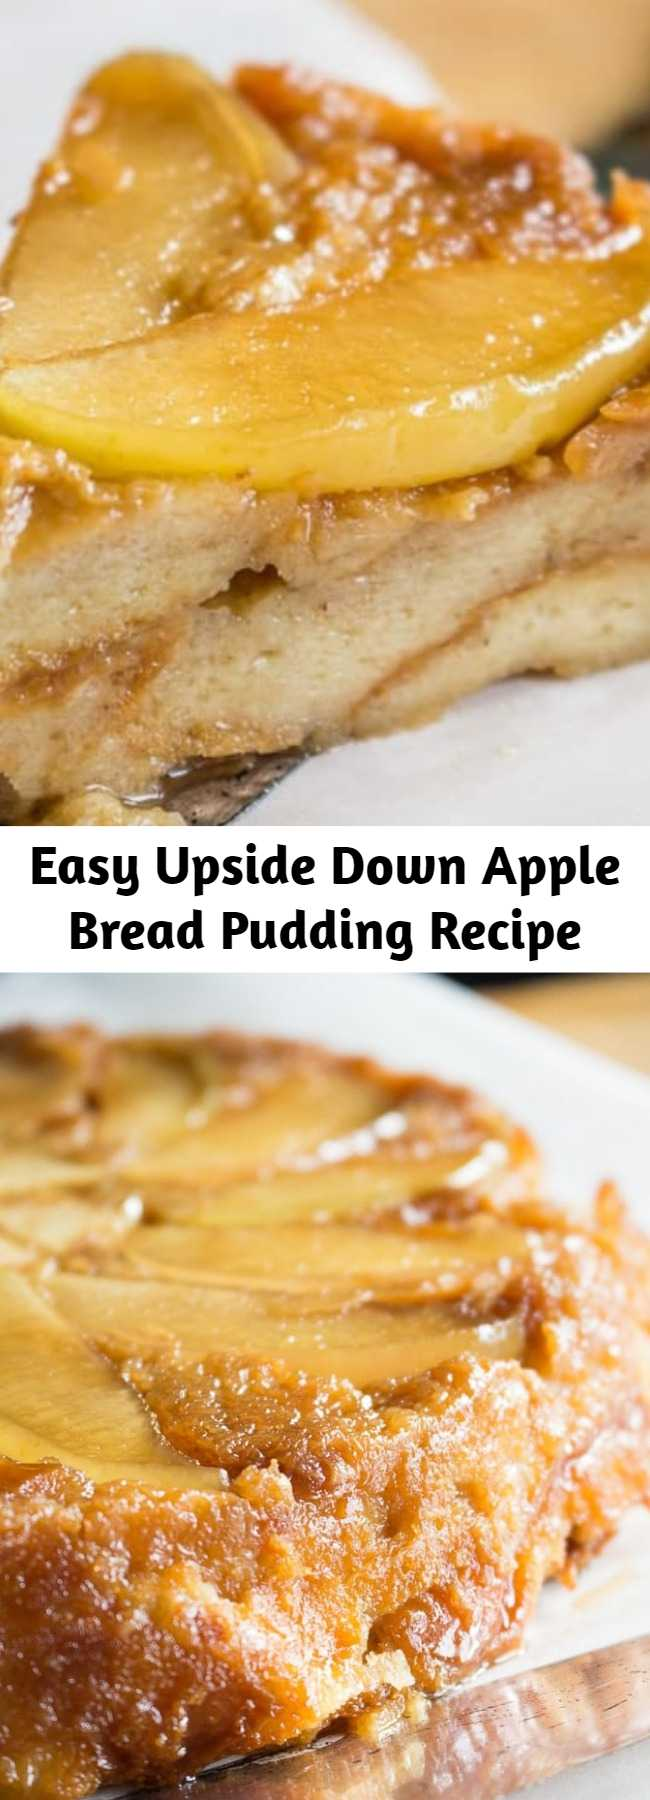 Easy Upside Down Apple Bread Pudding Recipe - Apple bread pudding has gone upside down!  You'll love this awesome and easy bread pudding recipe.  Try not to eat it all at one sitting. #apple #applepie #thanksgiving #breadpudding #dessert